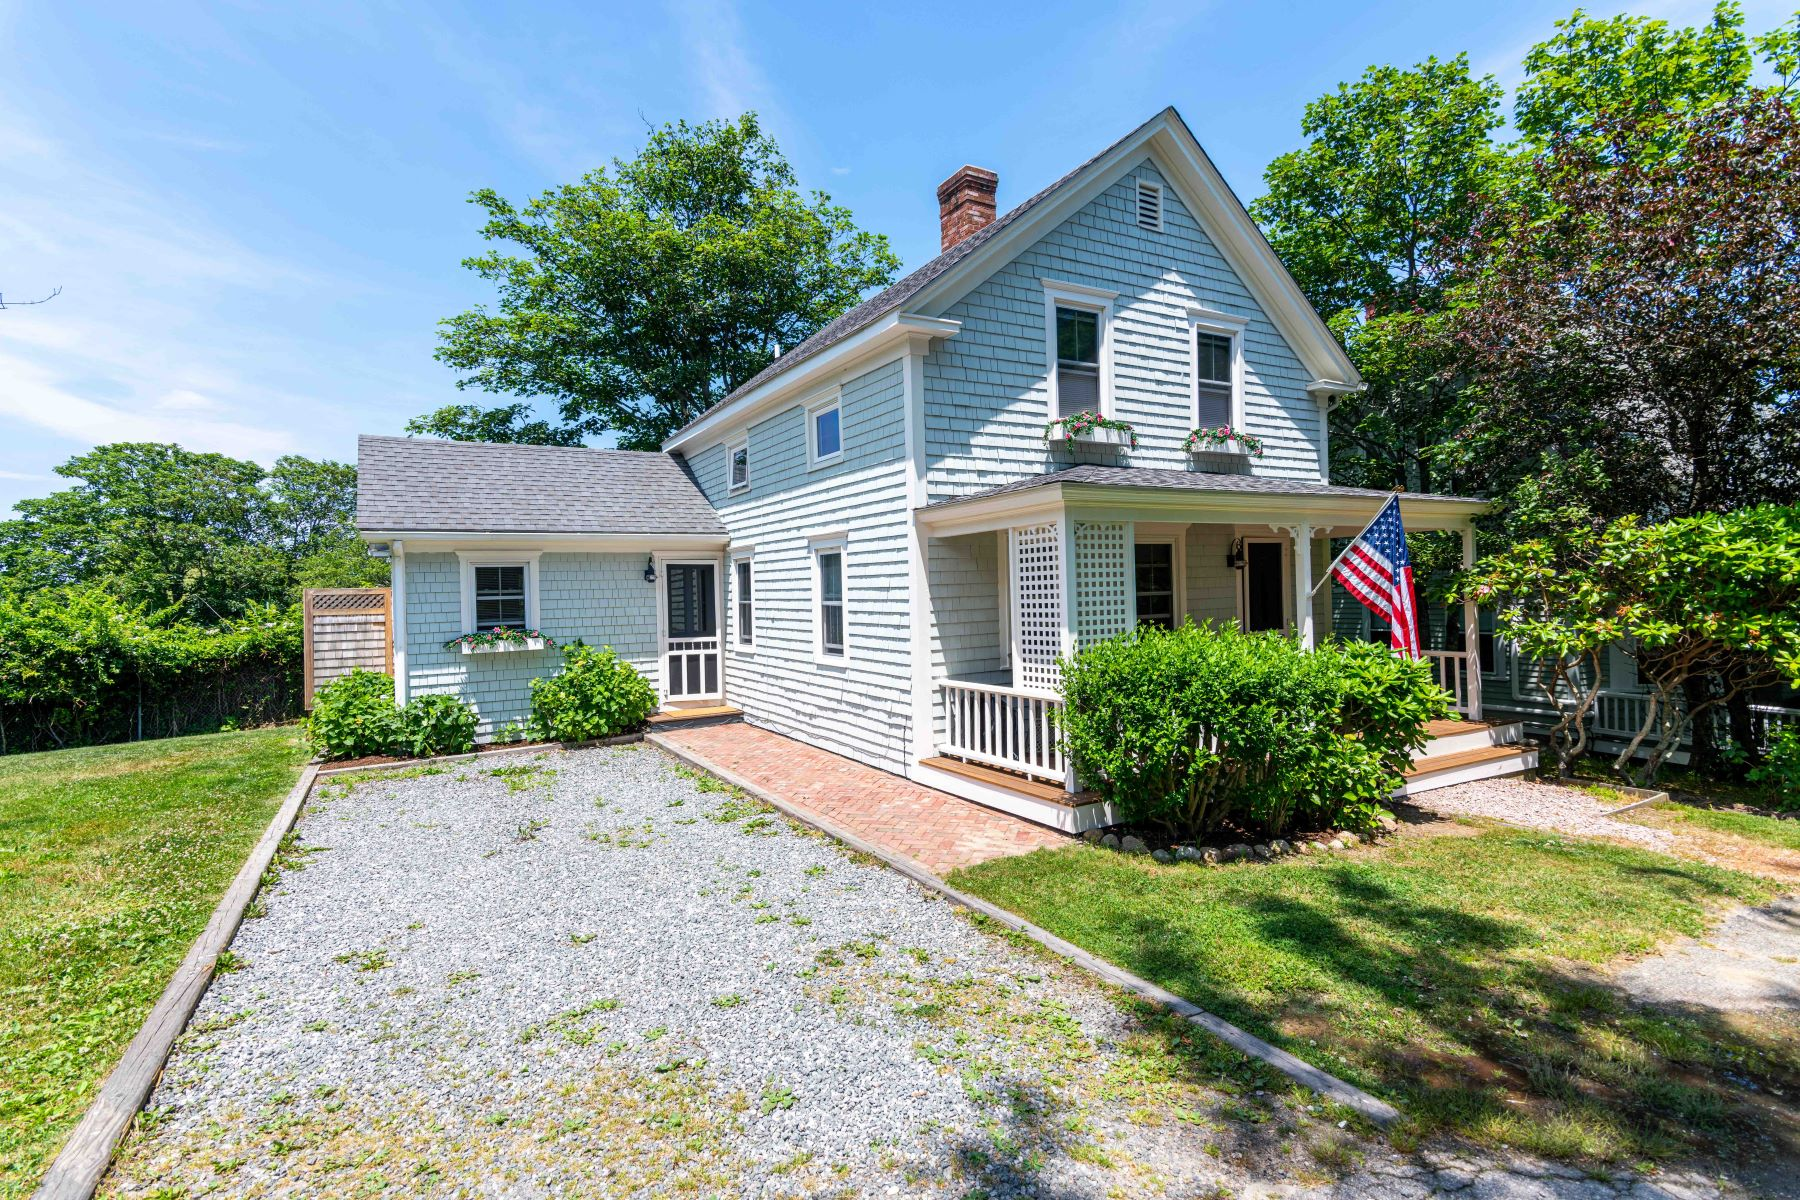 Single Family Homes for Sale at Driftwood 334 High Street Block Island, Rhode Island 02807 United States